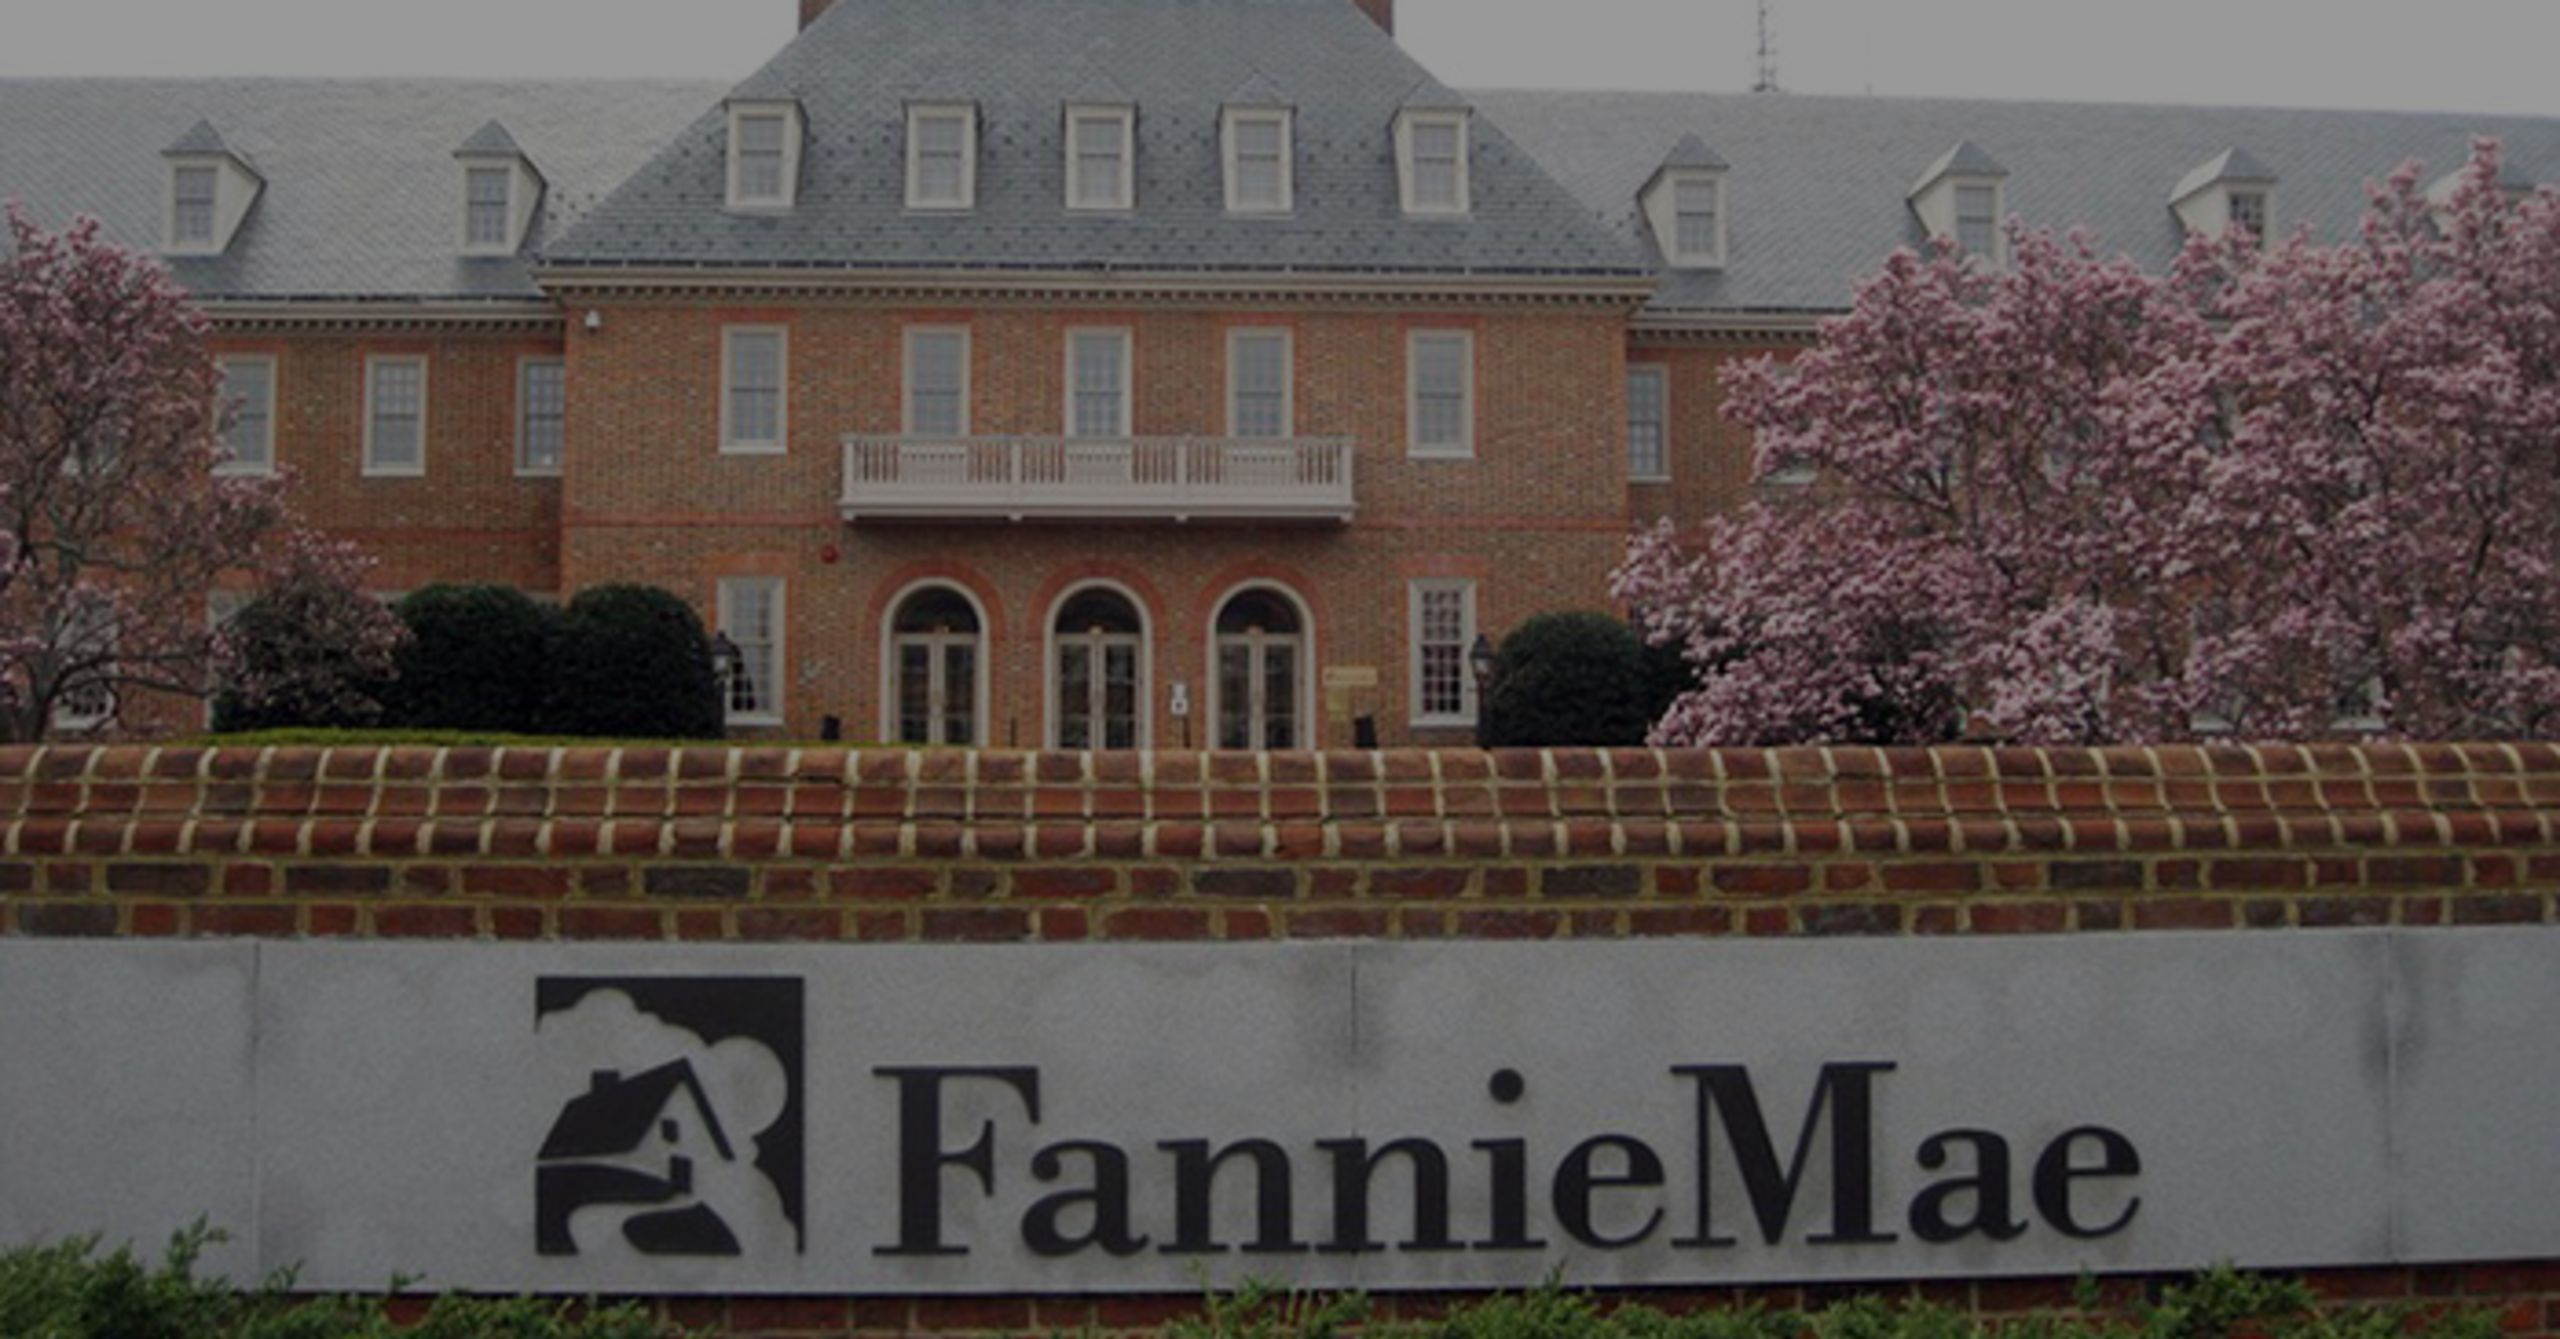 What Or Who Are Fannie And Freddie, Anyway?